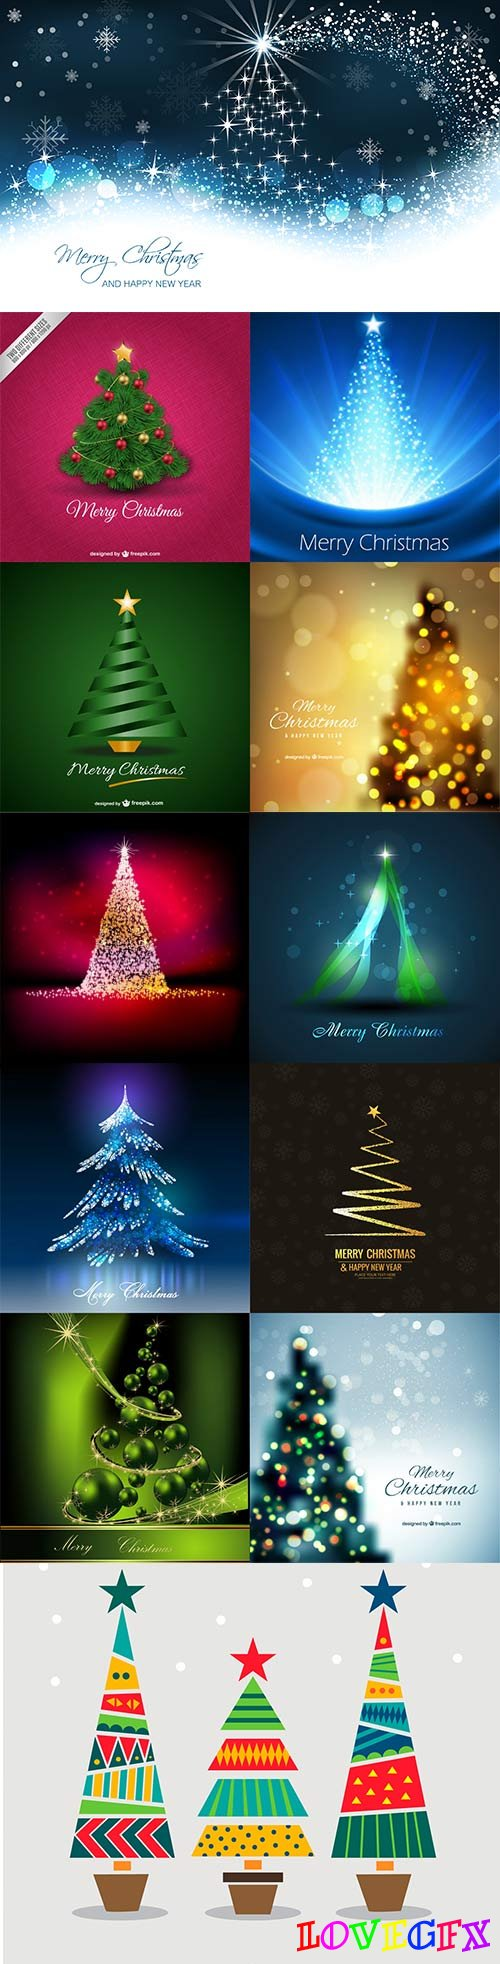 Christmas tree vector - 4